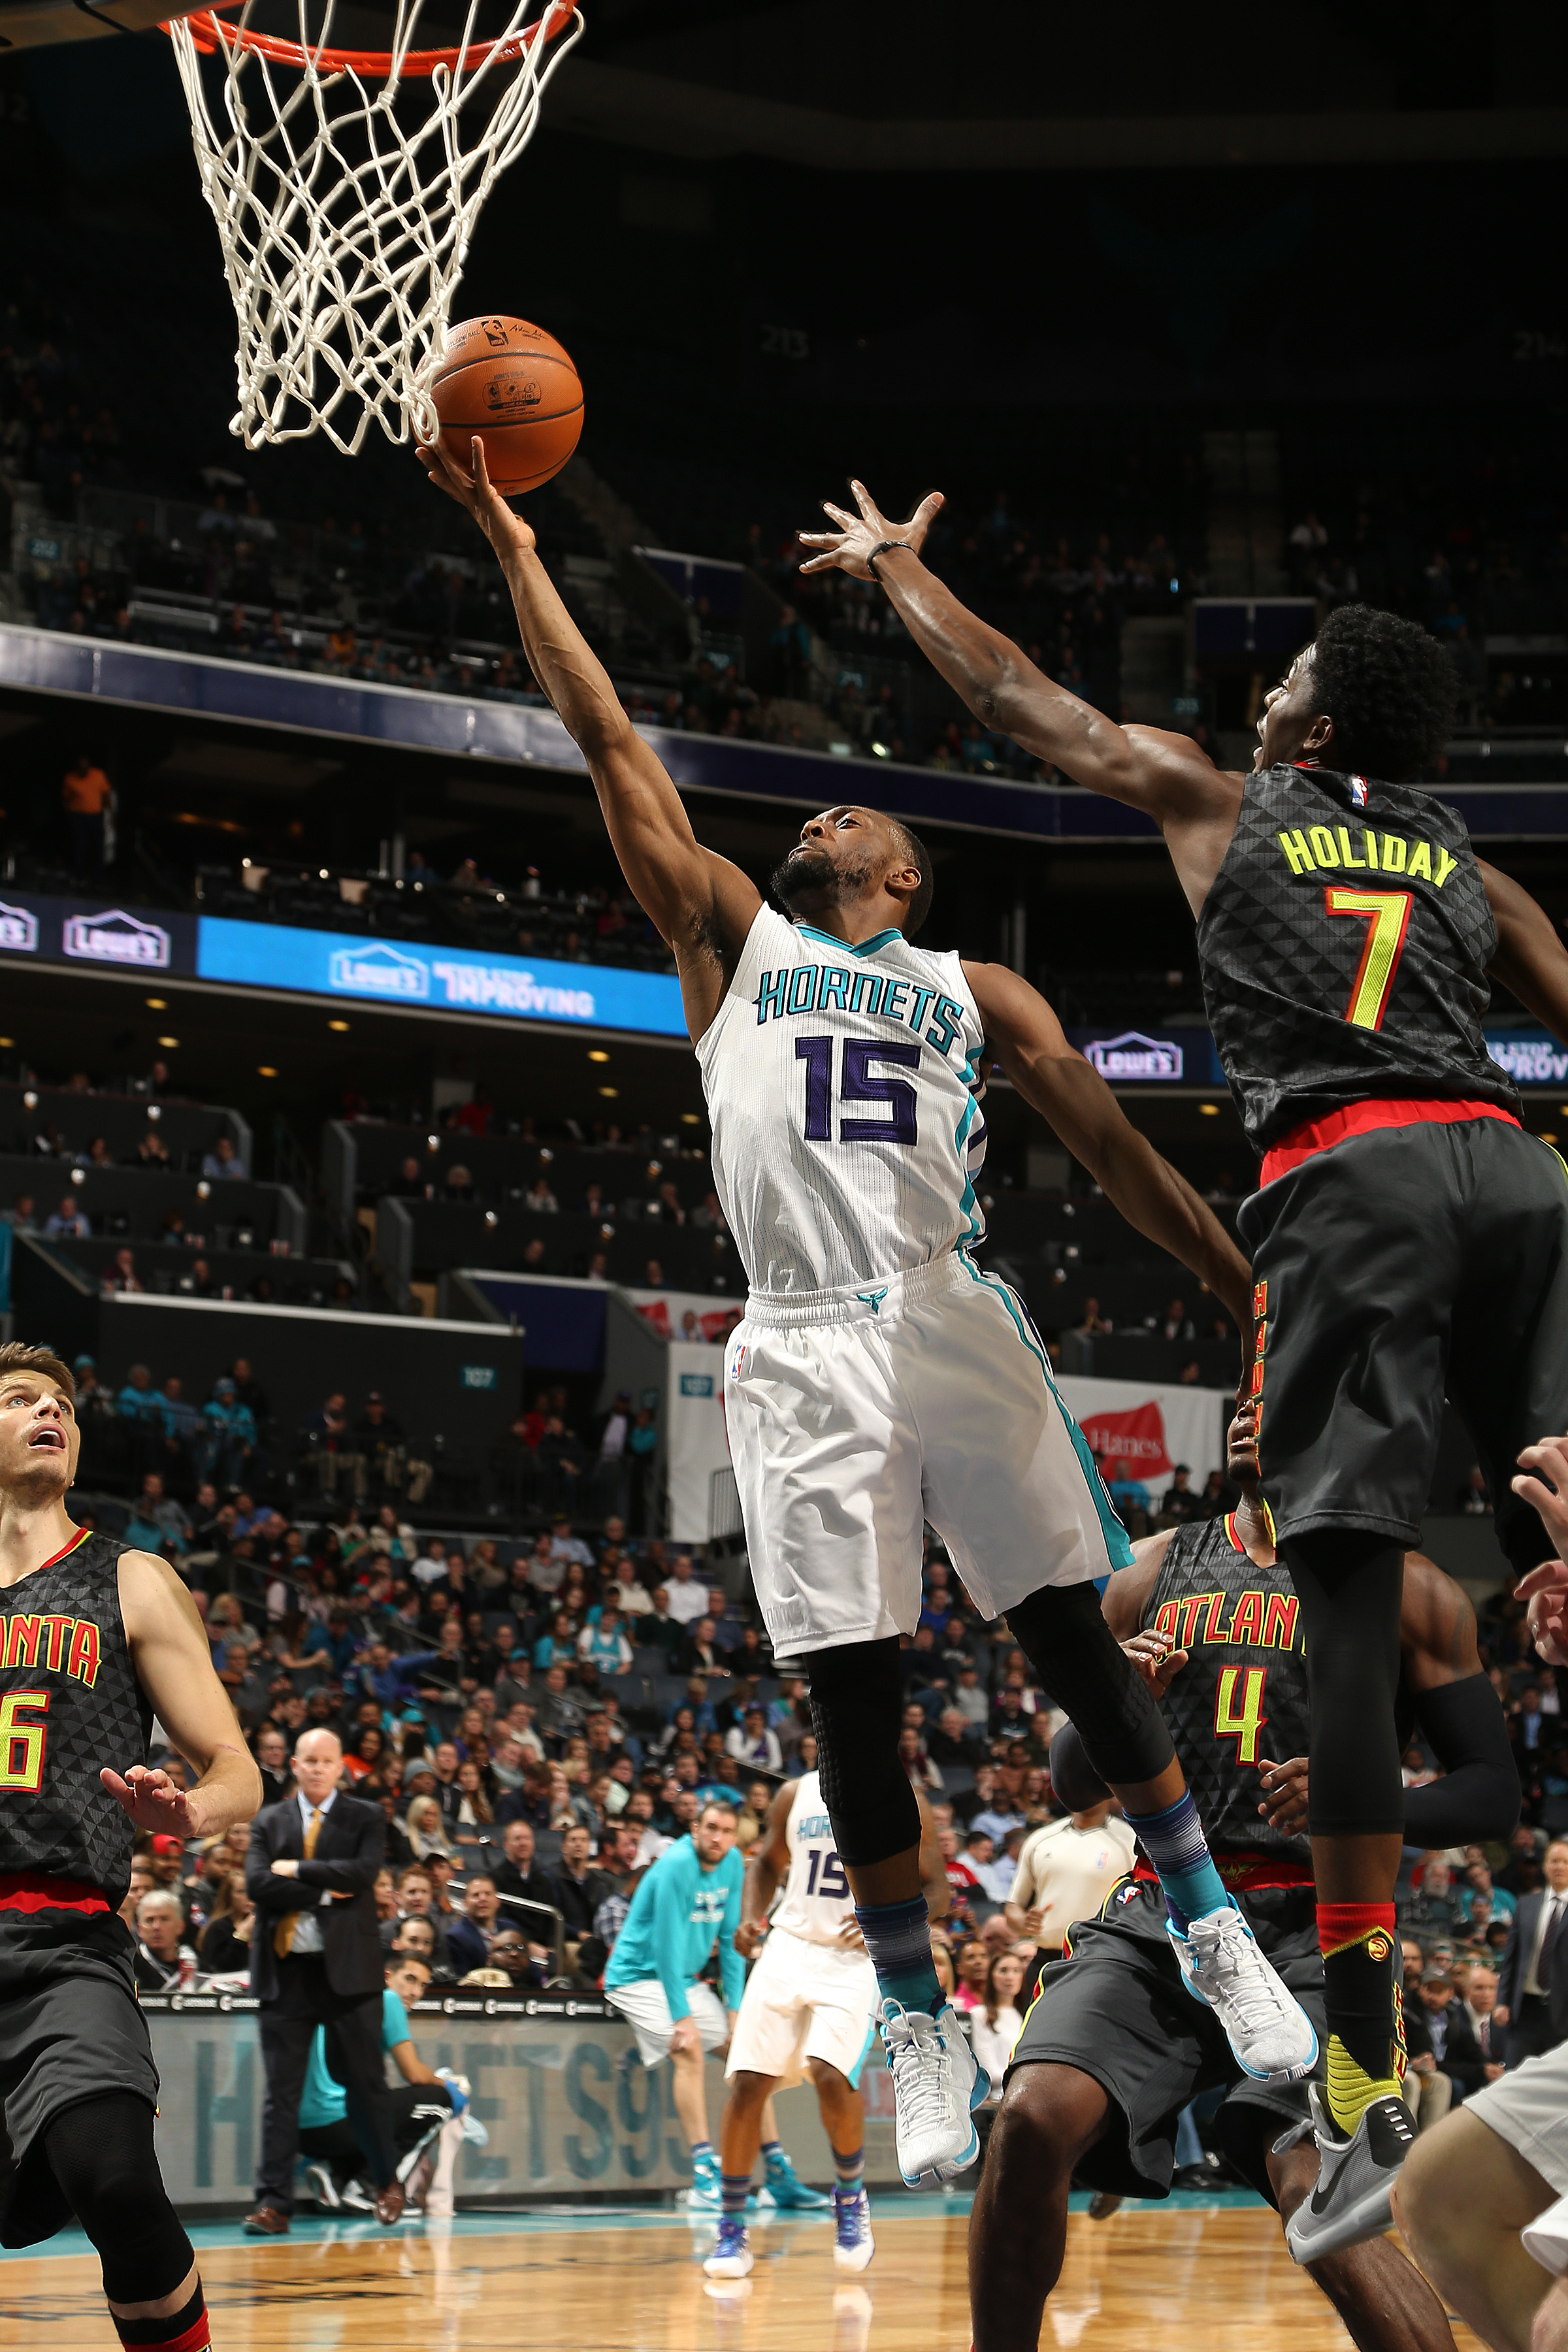 CHARLOTTE, NC - JANUARY 13: Kemba Walker #15 of the Charlotte Hornets shoots the ball against the Atlanta Hawks on January 13, 2016 at Time Warner Cable Arena in Charlotte, North Carolina. (Photo by Kent Smith/NBAE via Getty Images)